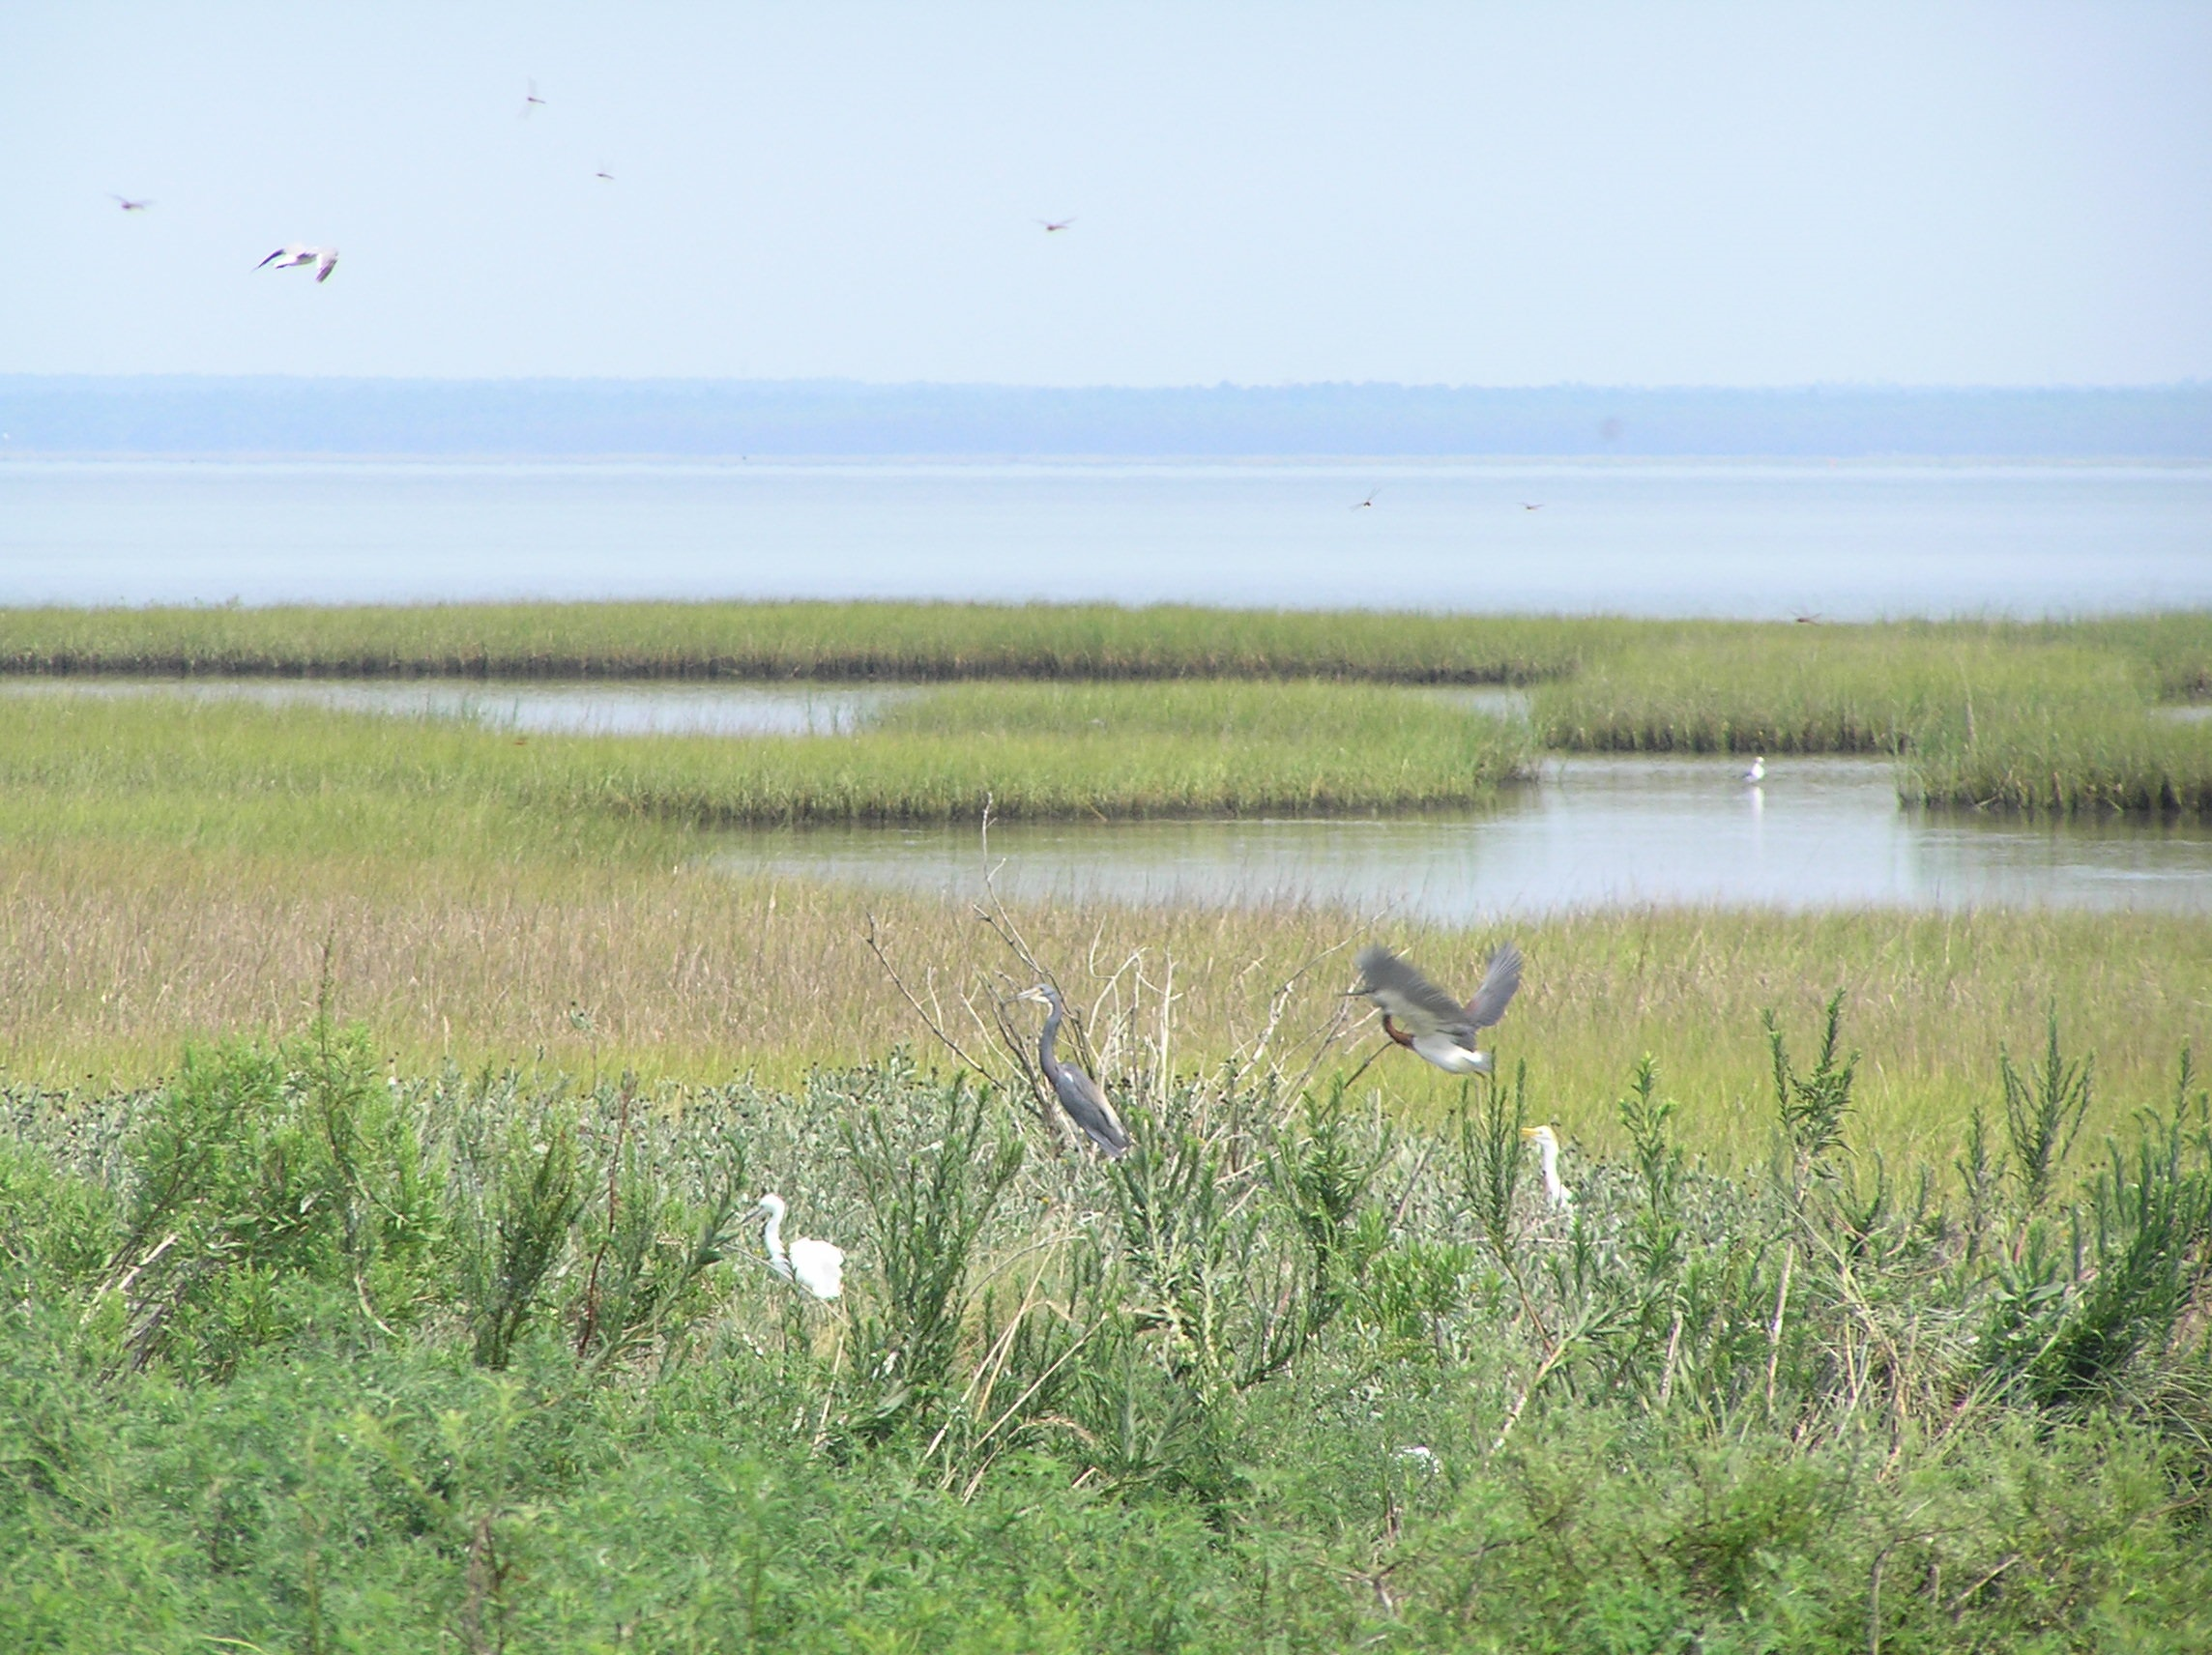 Birds in a marsh